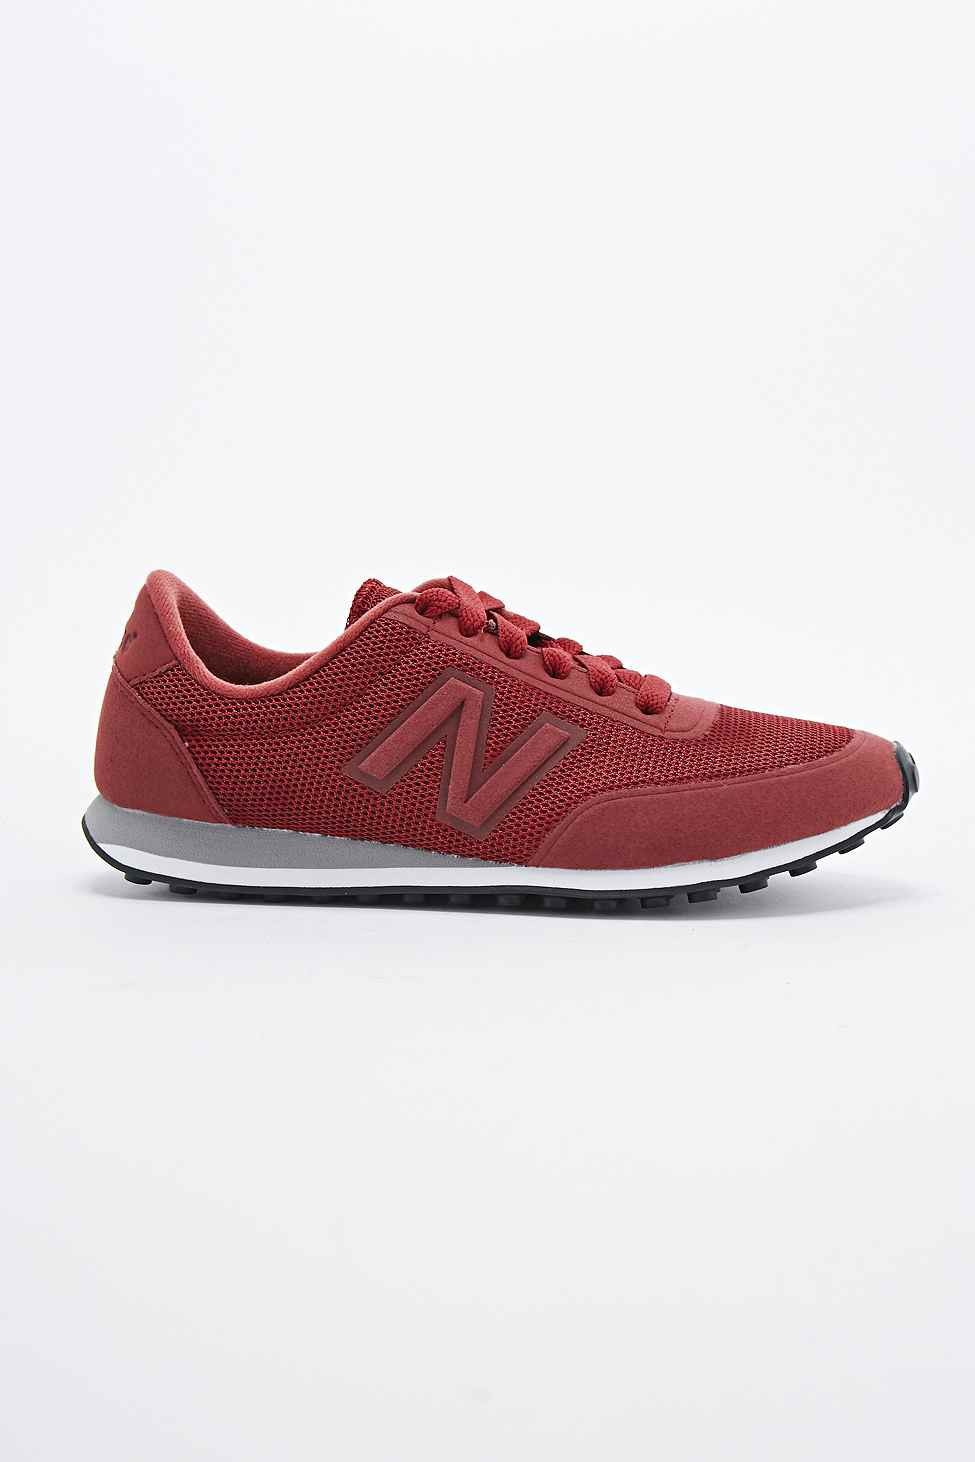 new balance u410 rouge bordeaux